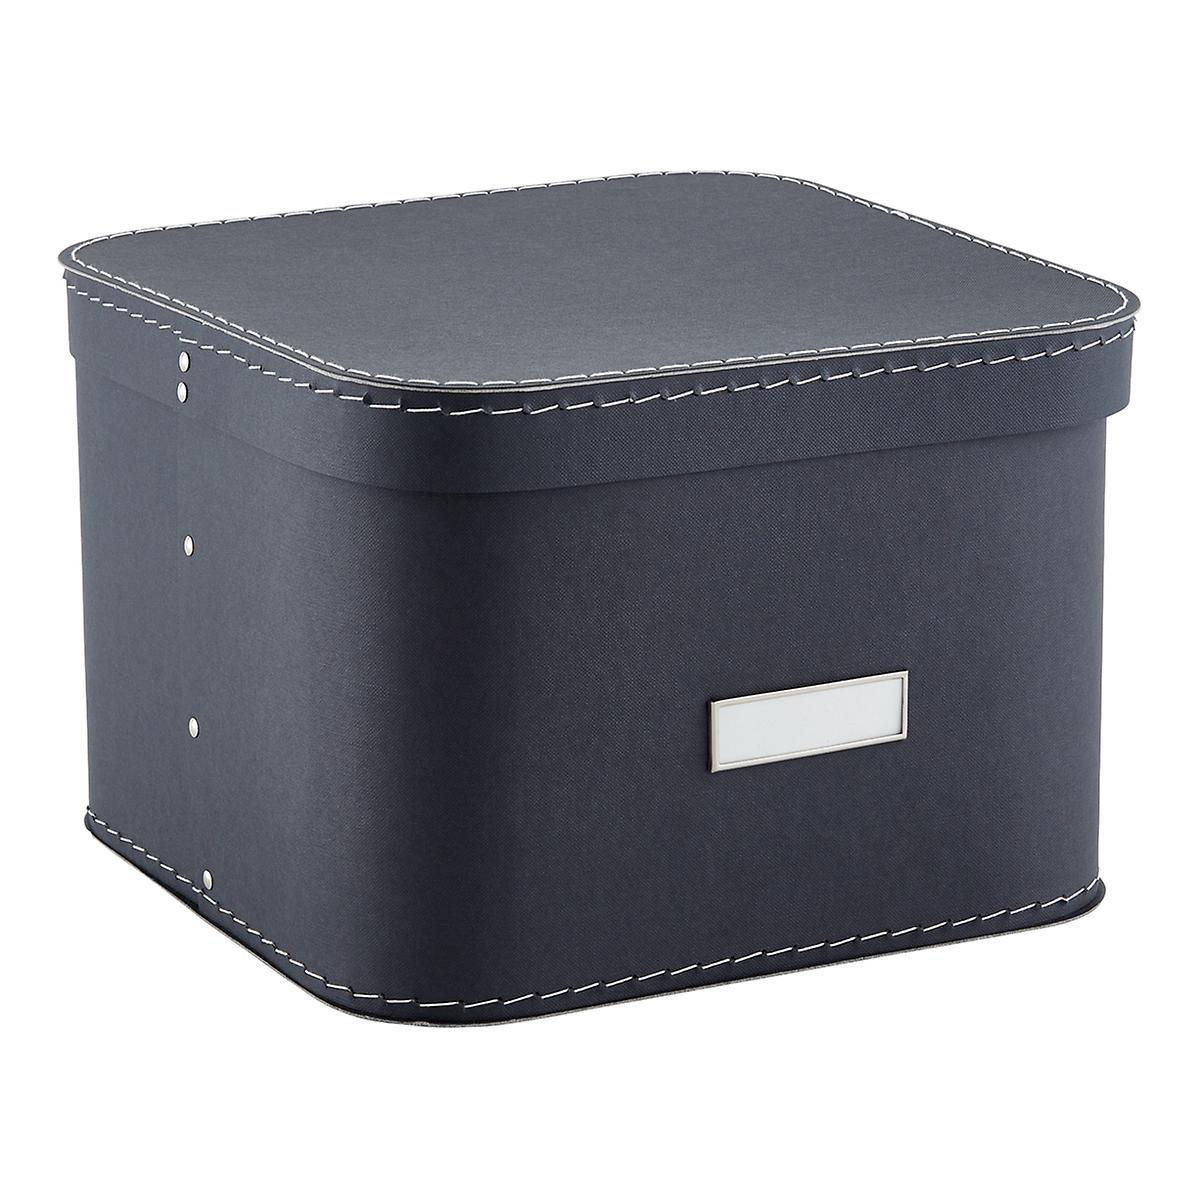 Graphite Oskar Storage Box with Lid